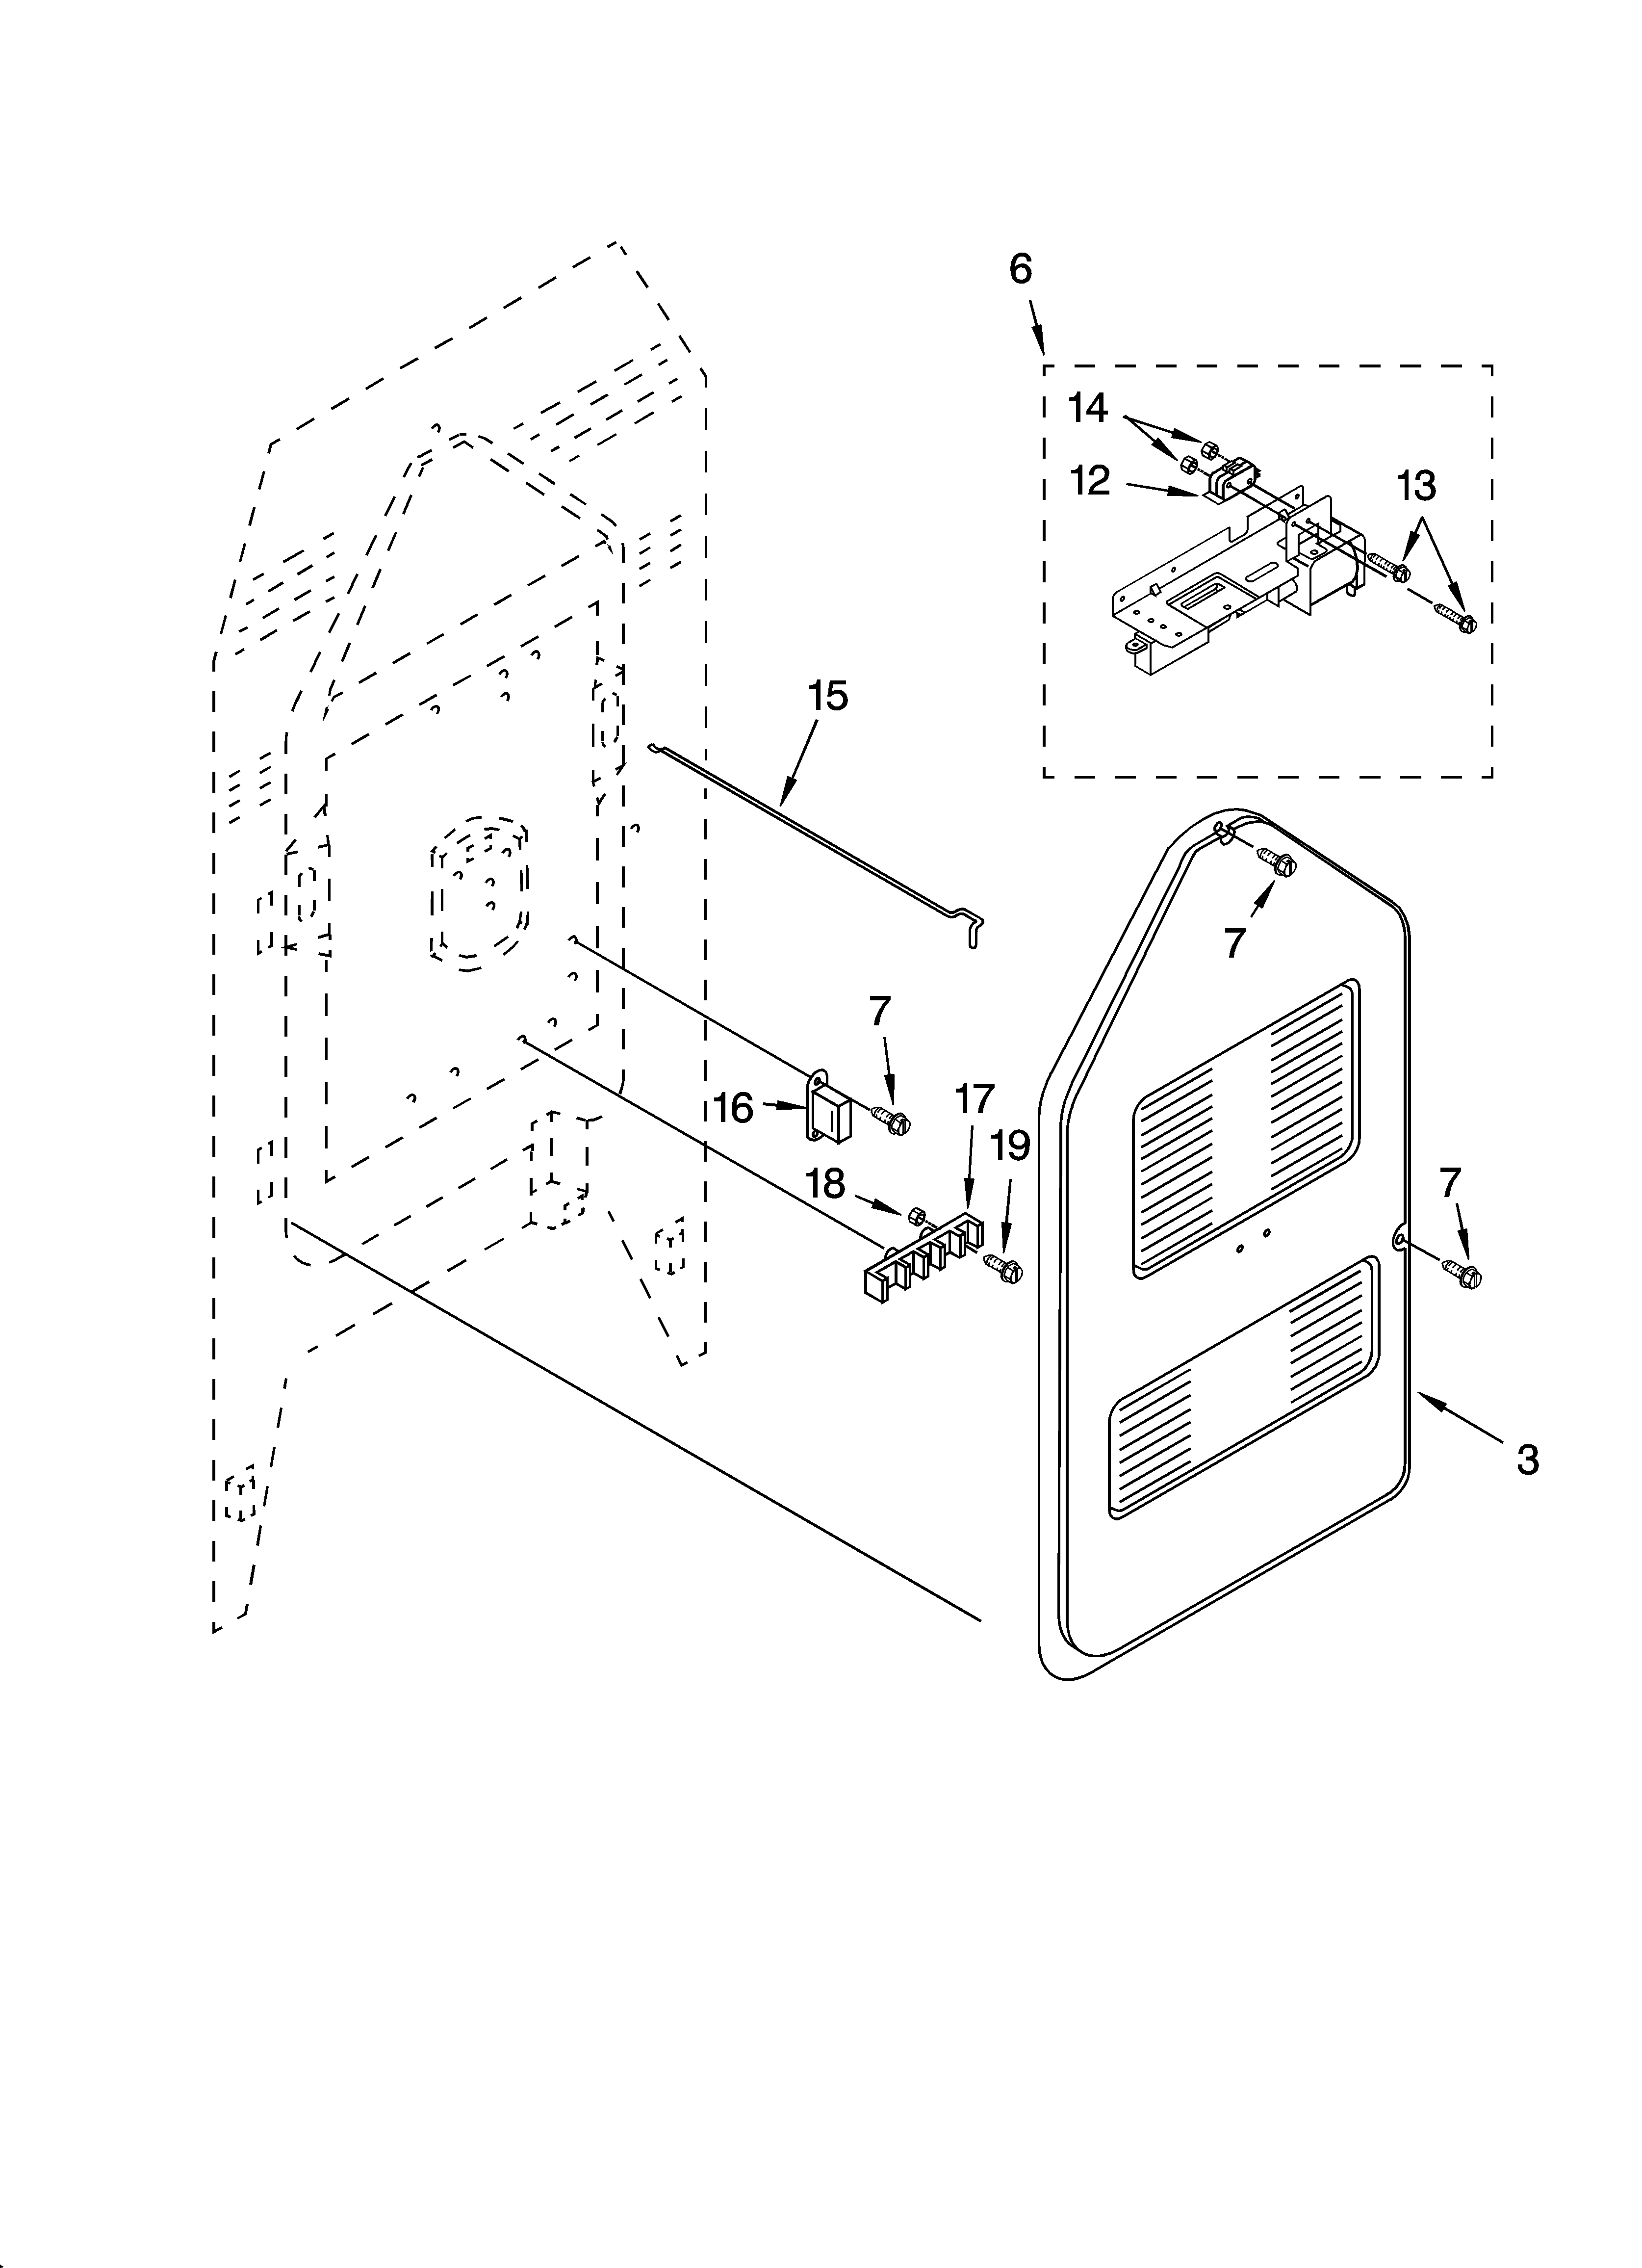 ykerc507hw0 free standing electric range rear chassis parts diagram